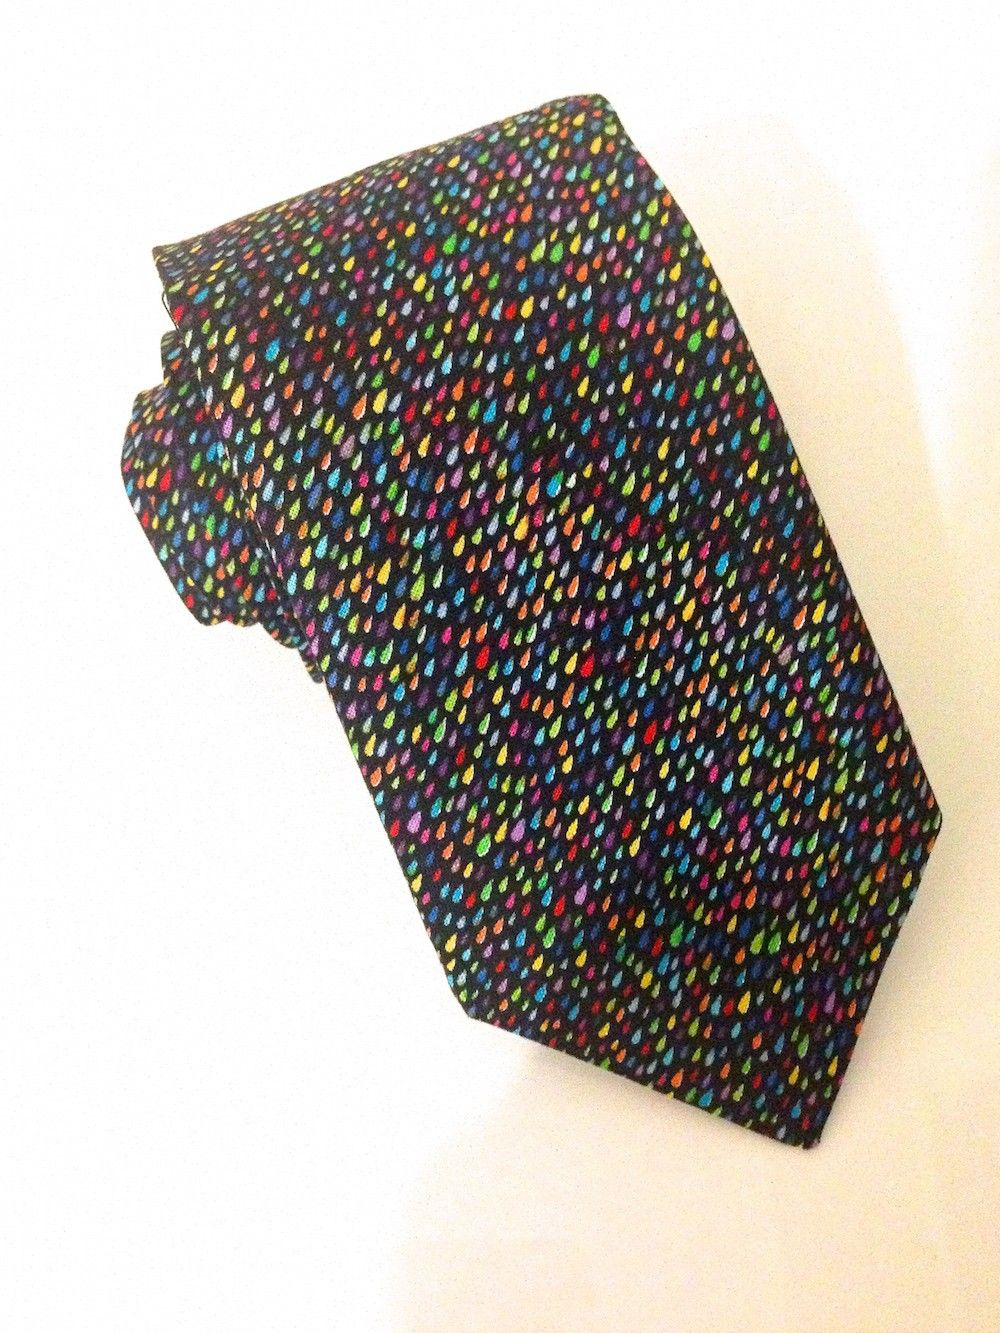 Rain Drops Multi Coloured Tie  #VanBuck #Tie #NeckTie #Ties #Rainbow #Novelty #Colourful #Accessories #MensAccessories #RaindropsTie #FabTies   http://www.fabties.com/ties/novelty-ties/rain-drops-multi-coloured-tie.html